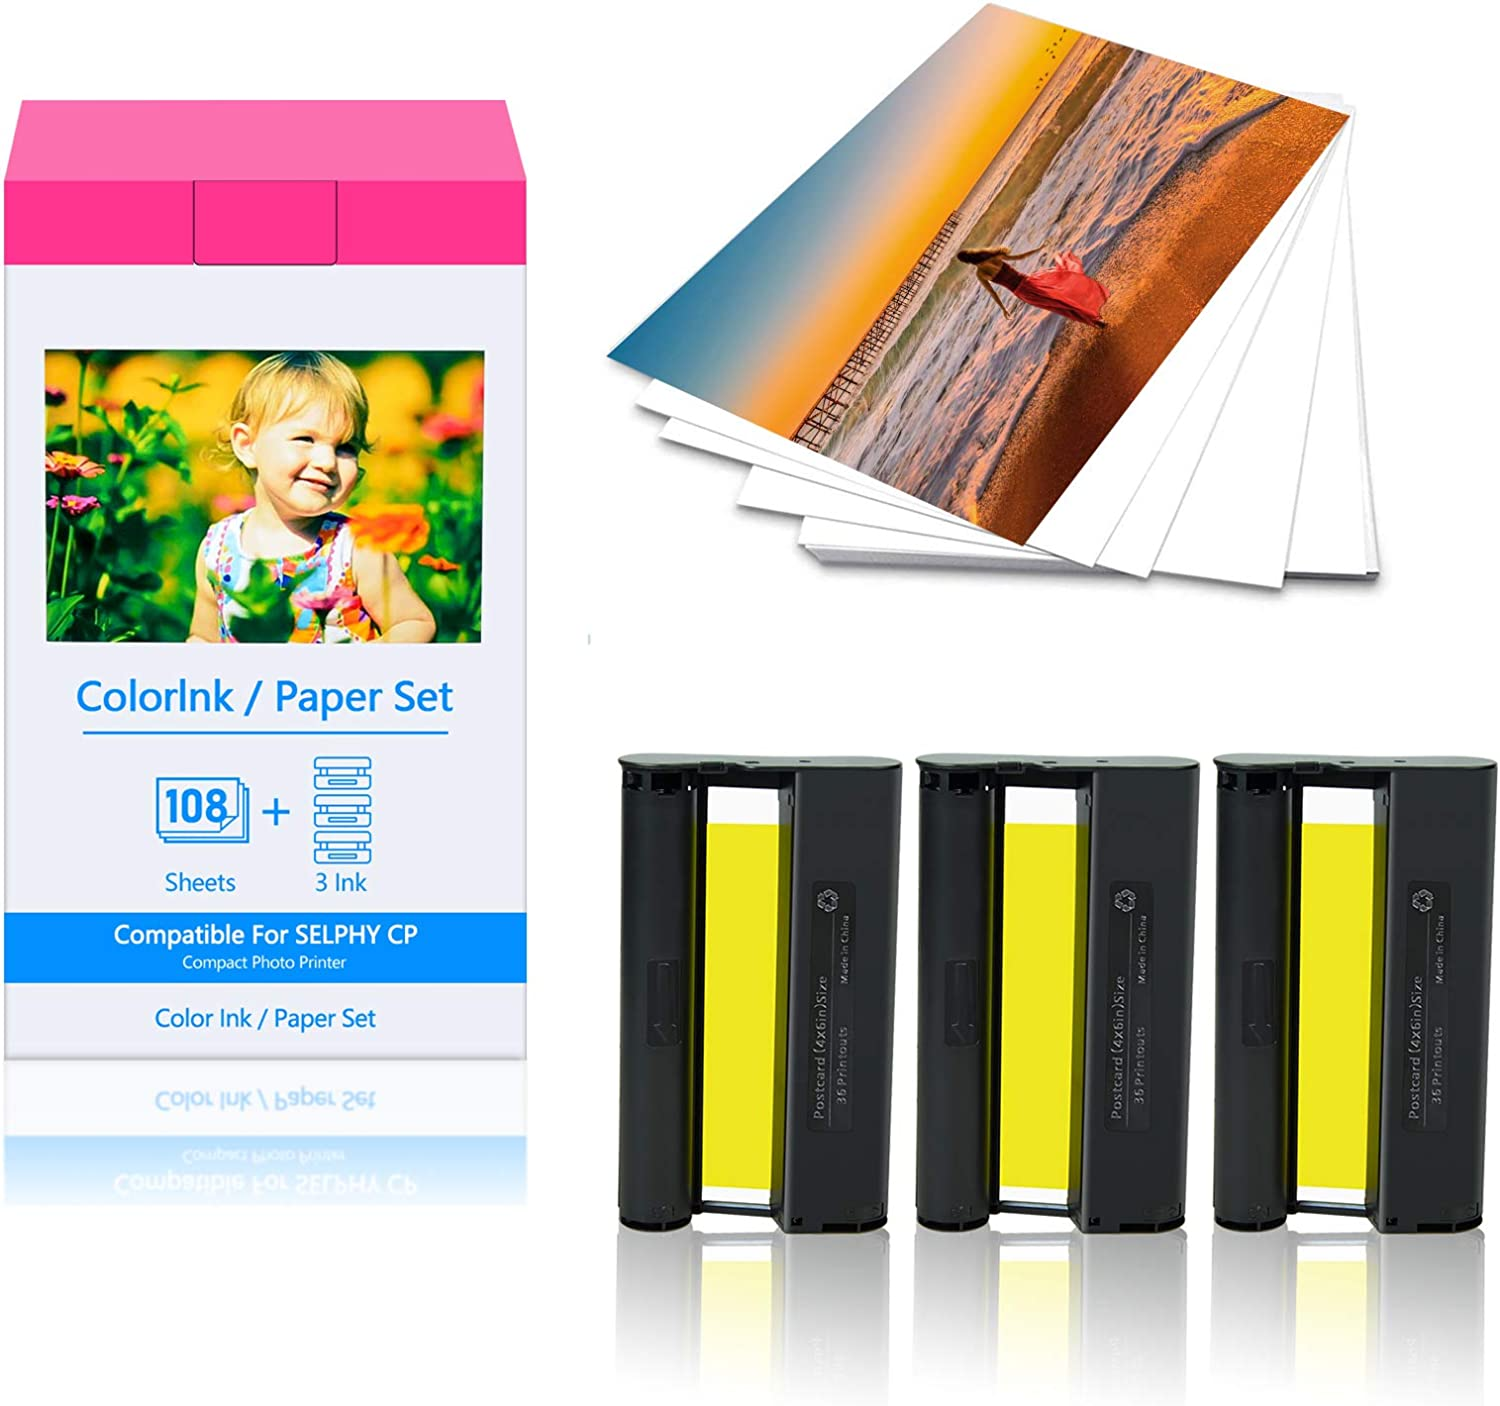 KCMYTONER 1 Pack Compatible for Canon Same day shipping Large discharge sale Color Ink KP108 KP-108IN 3